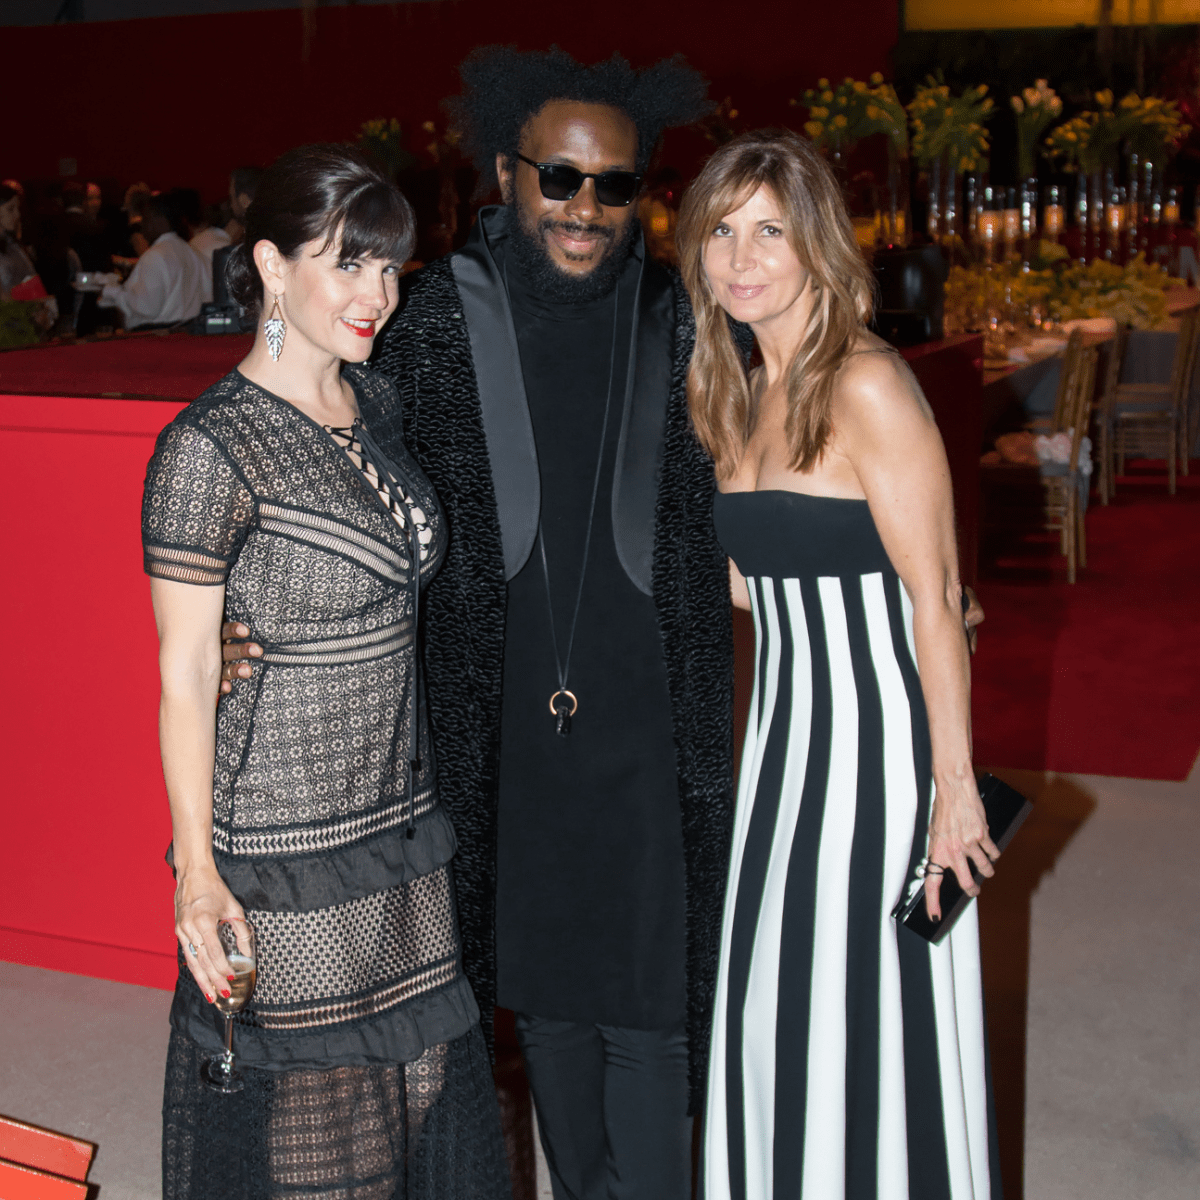 Sara See, Charles Smith II, Jennifer Karol